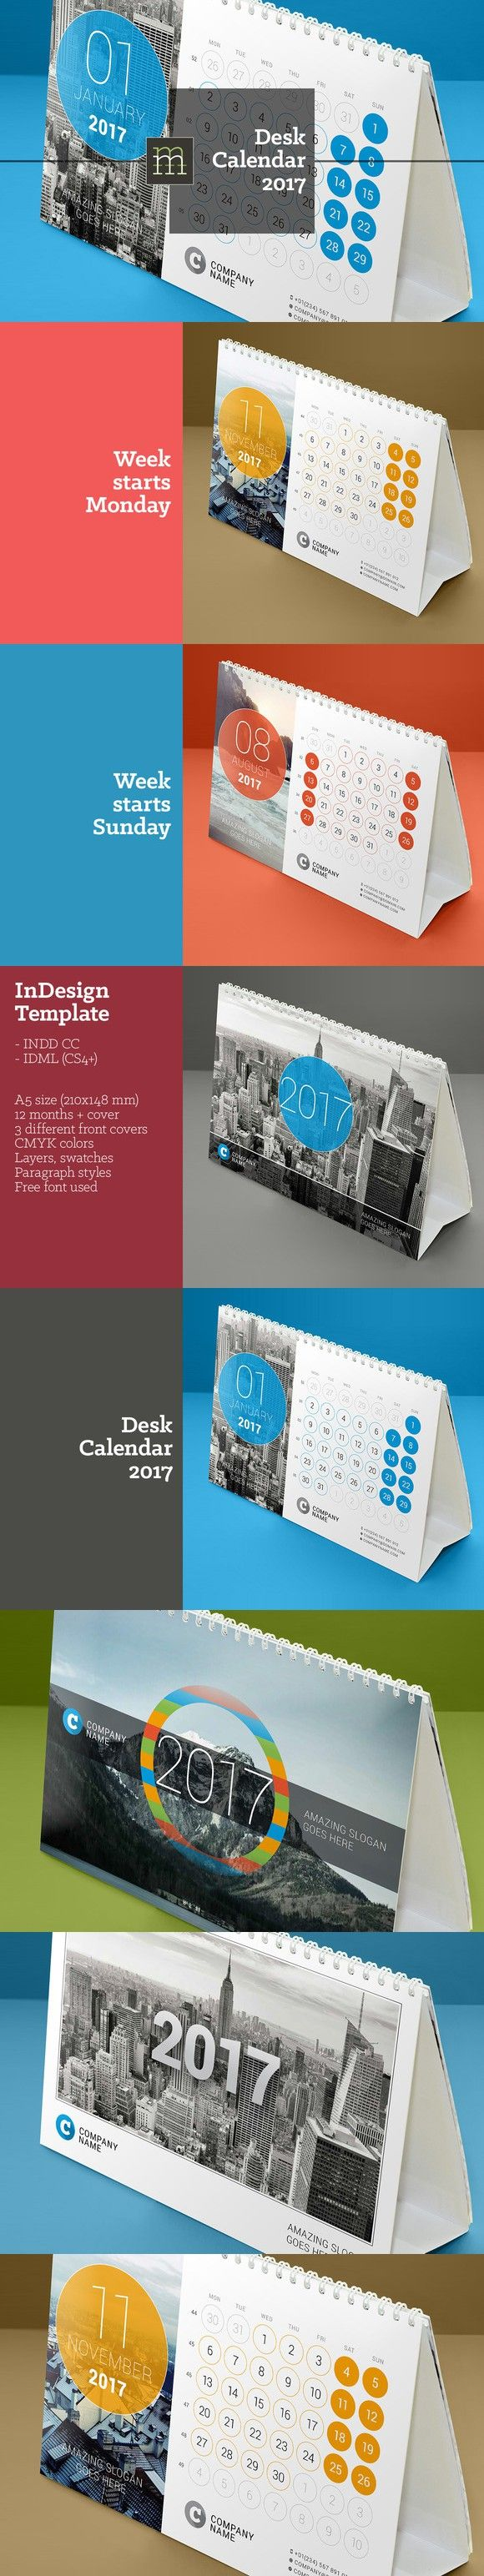 Desk Calendar 2017 (DC11). Stationery Templates. $7.00